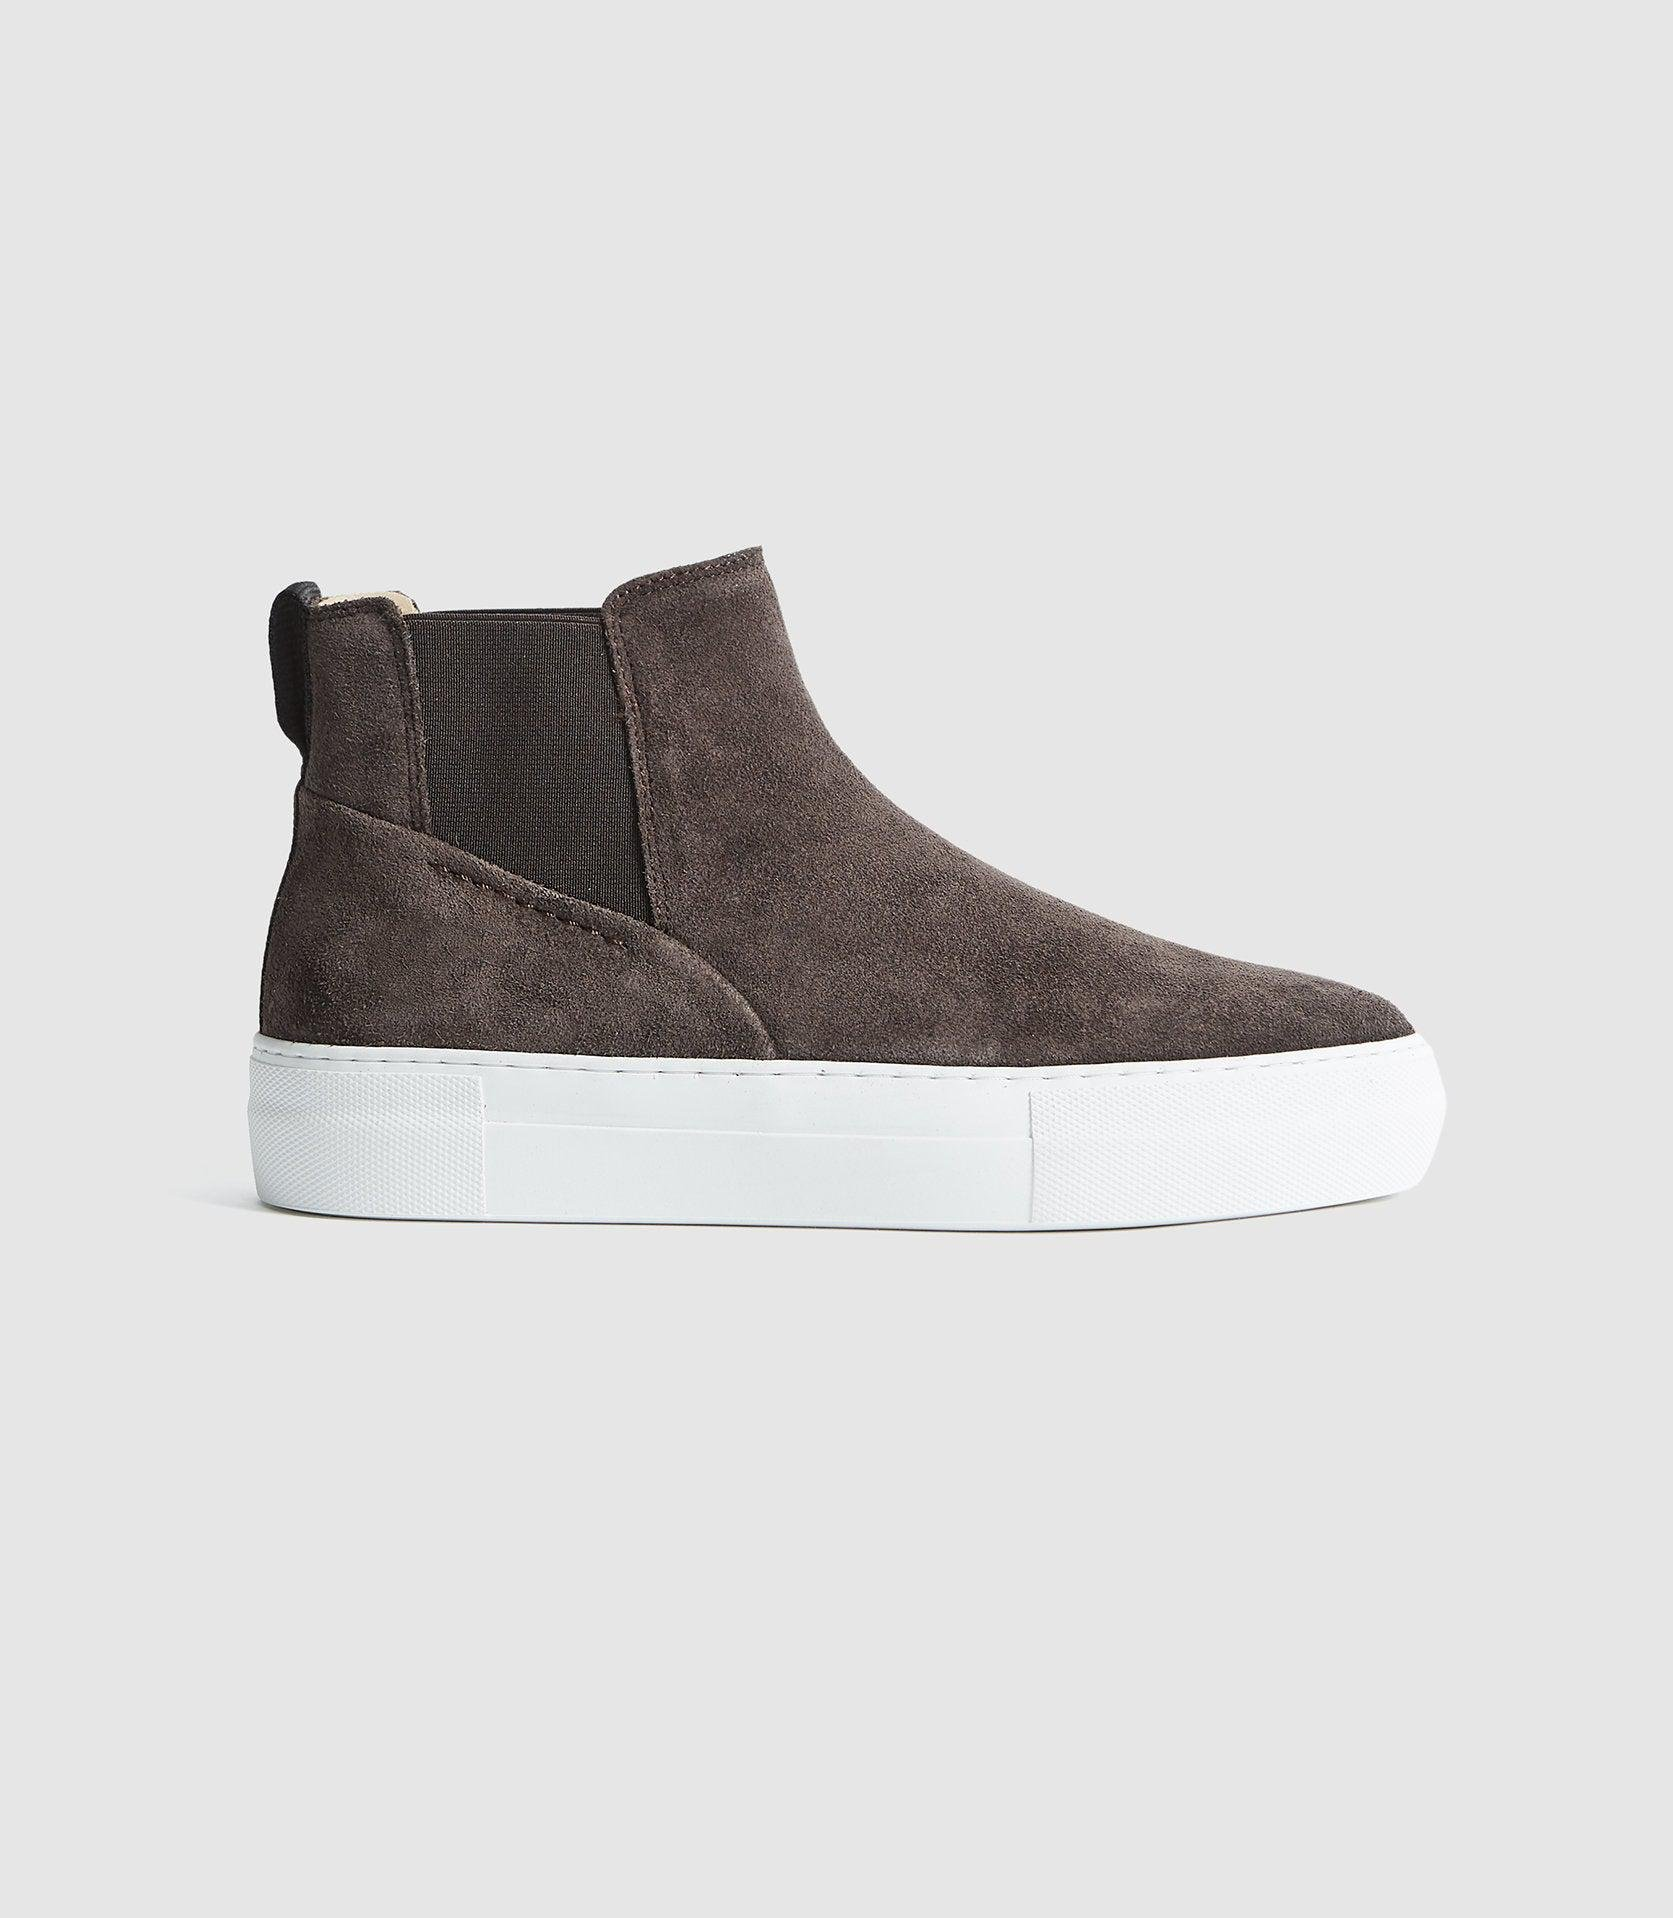 ALVIE - SUEDE SLIP ON HIGH TOP TRAINERS